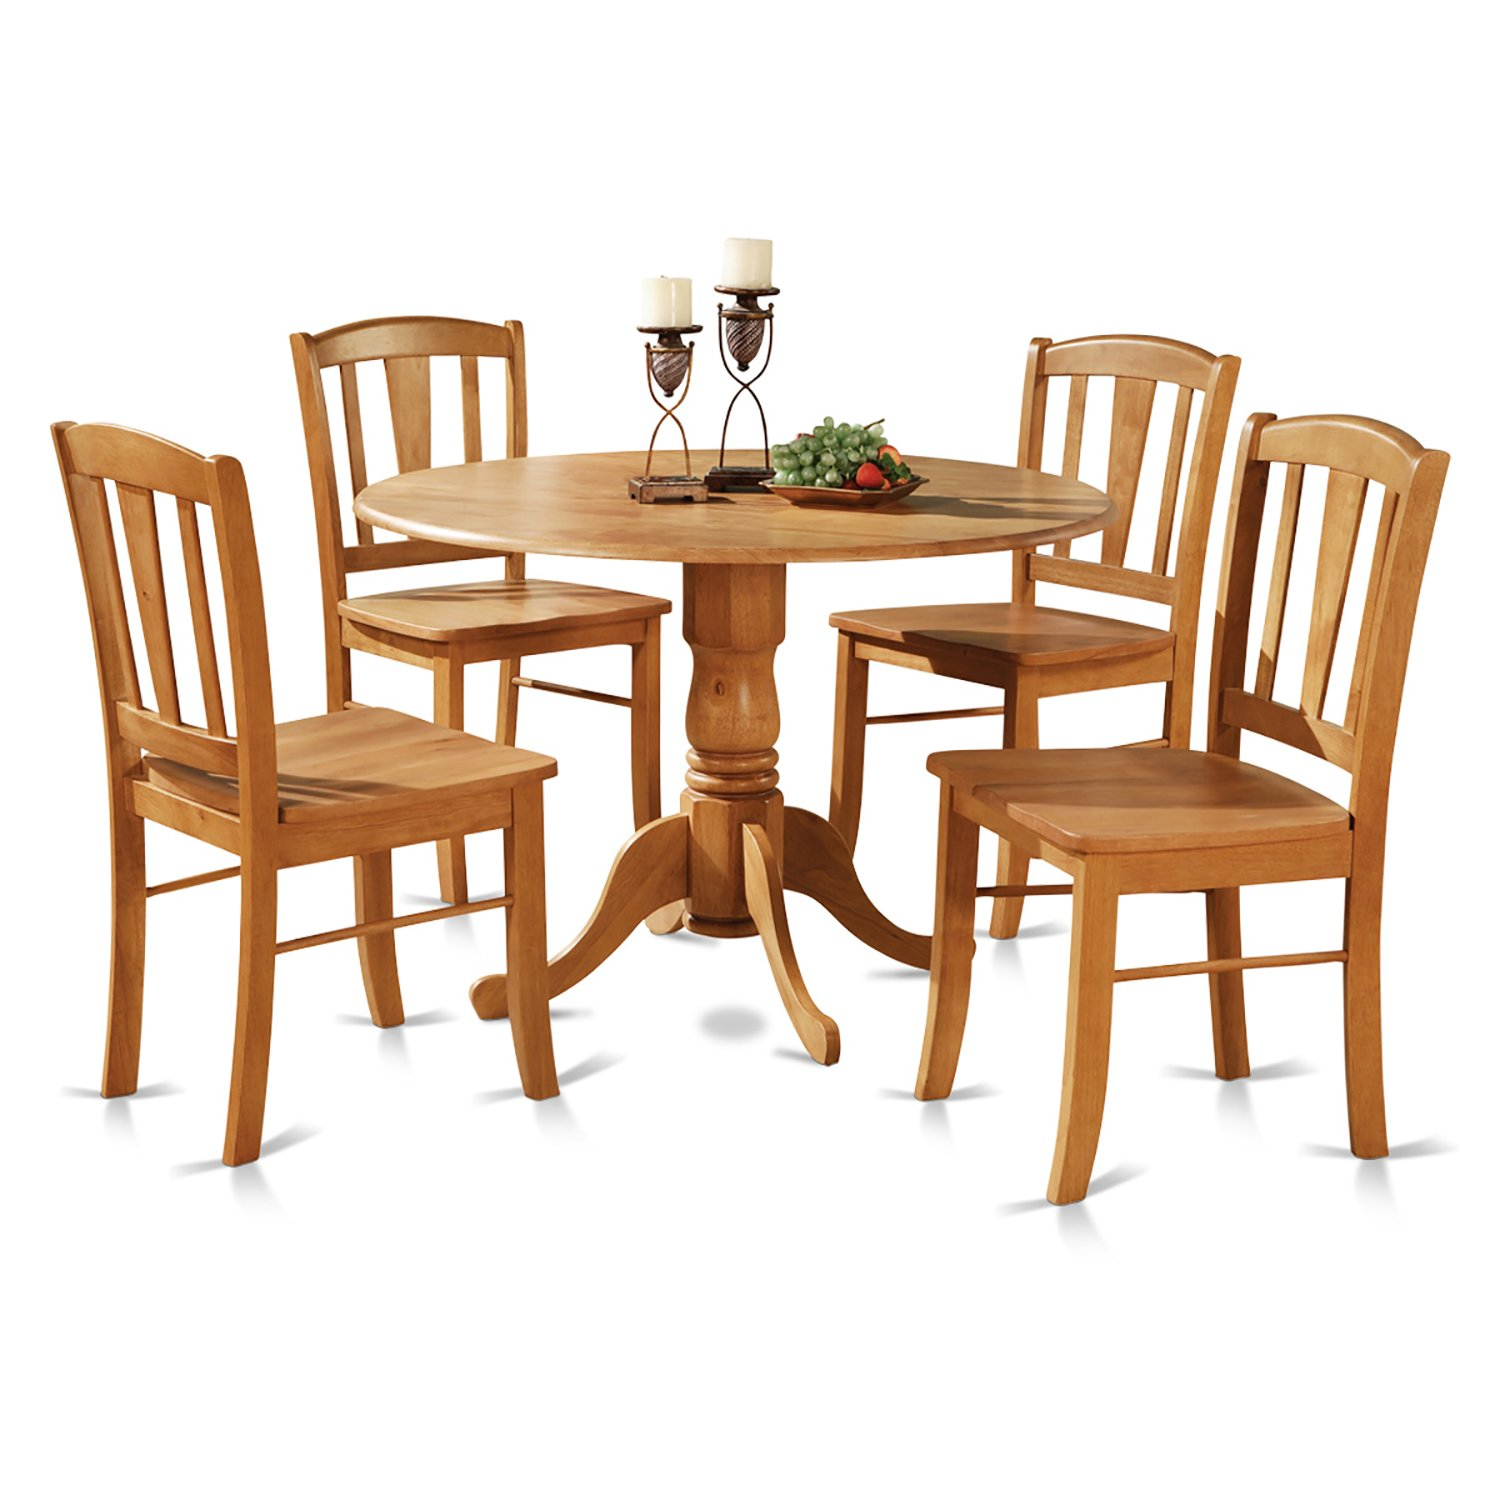 East West Furniture DLIN5-OAK-W 5-Piece Round Kitchen Table and 4 Dinette Chairs Set, Oak Finish by East West Furniture